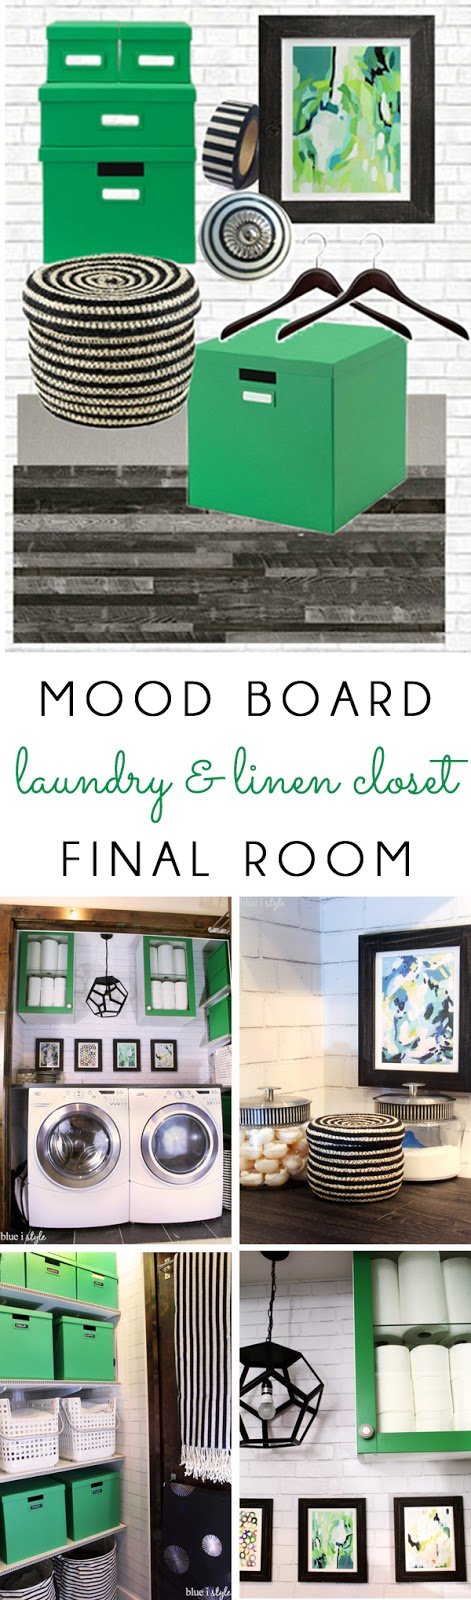 Laundry and linen closet mood board and photos